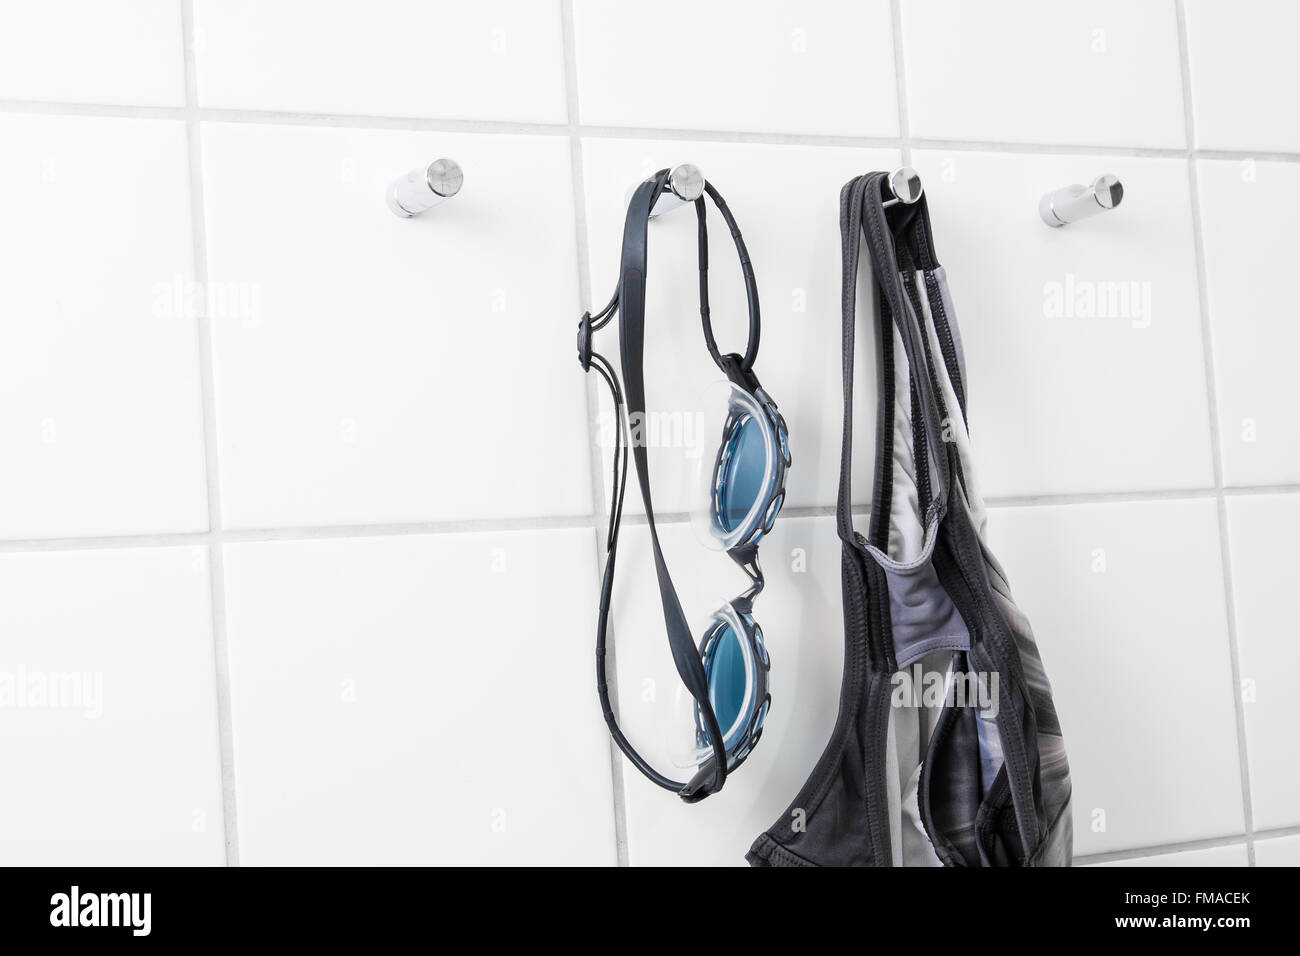 Swimming goggles and bathing suit hanging on tile wall - Stock Image